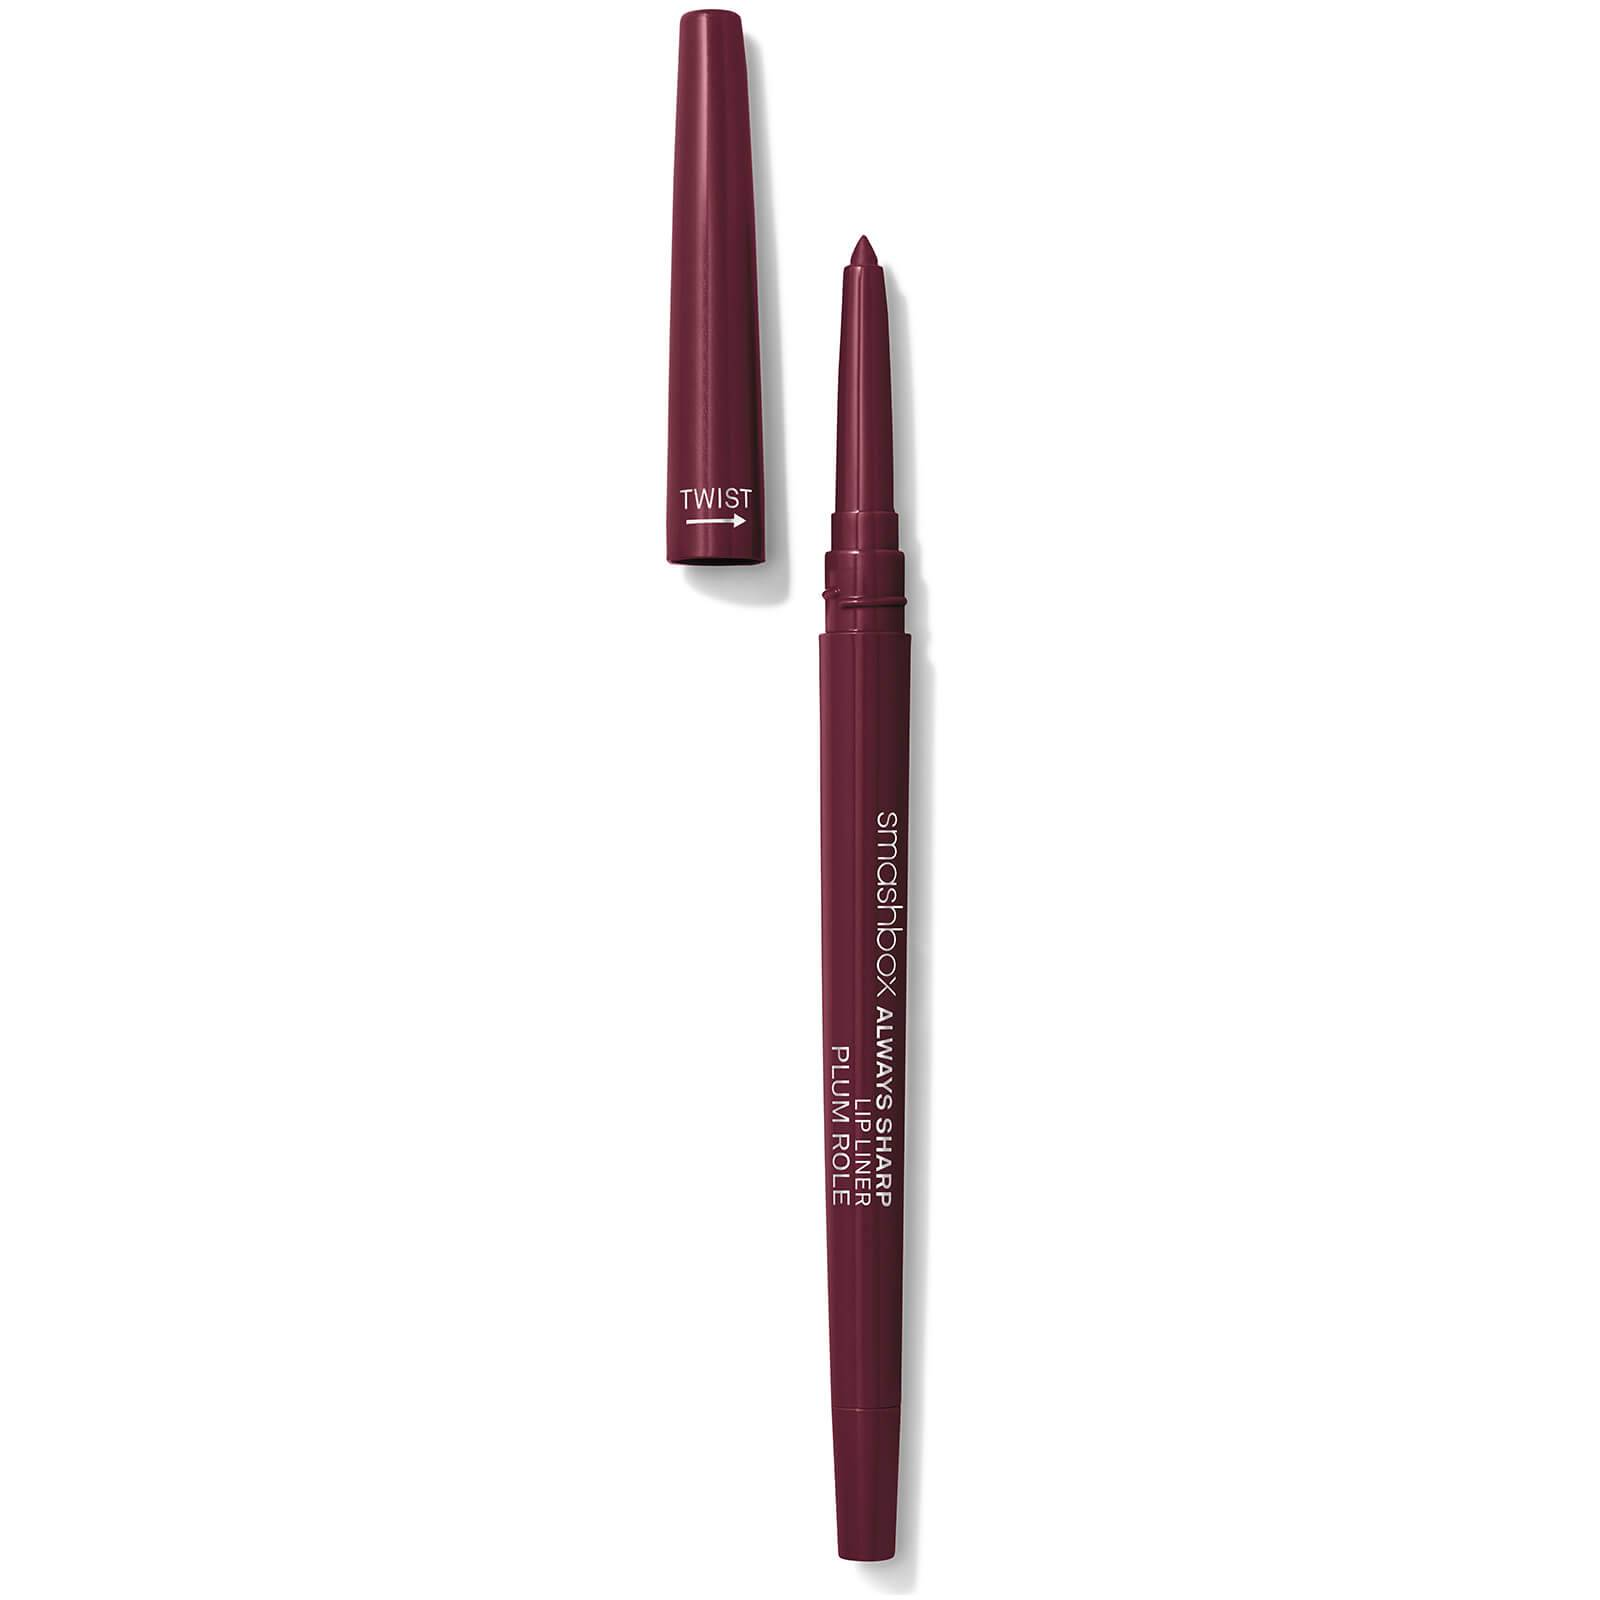 Smashbox Always Sharp Lip Liner (Various Shades) - #511 e25 Plum Role